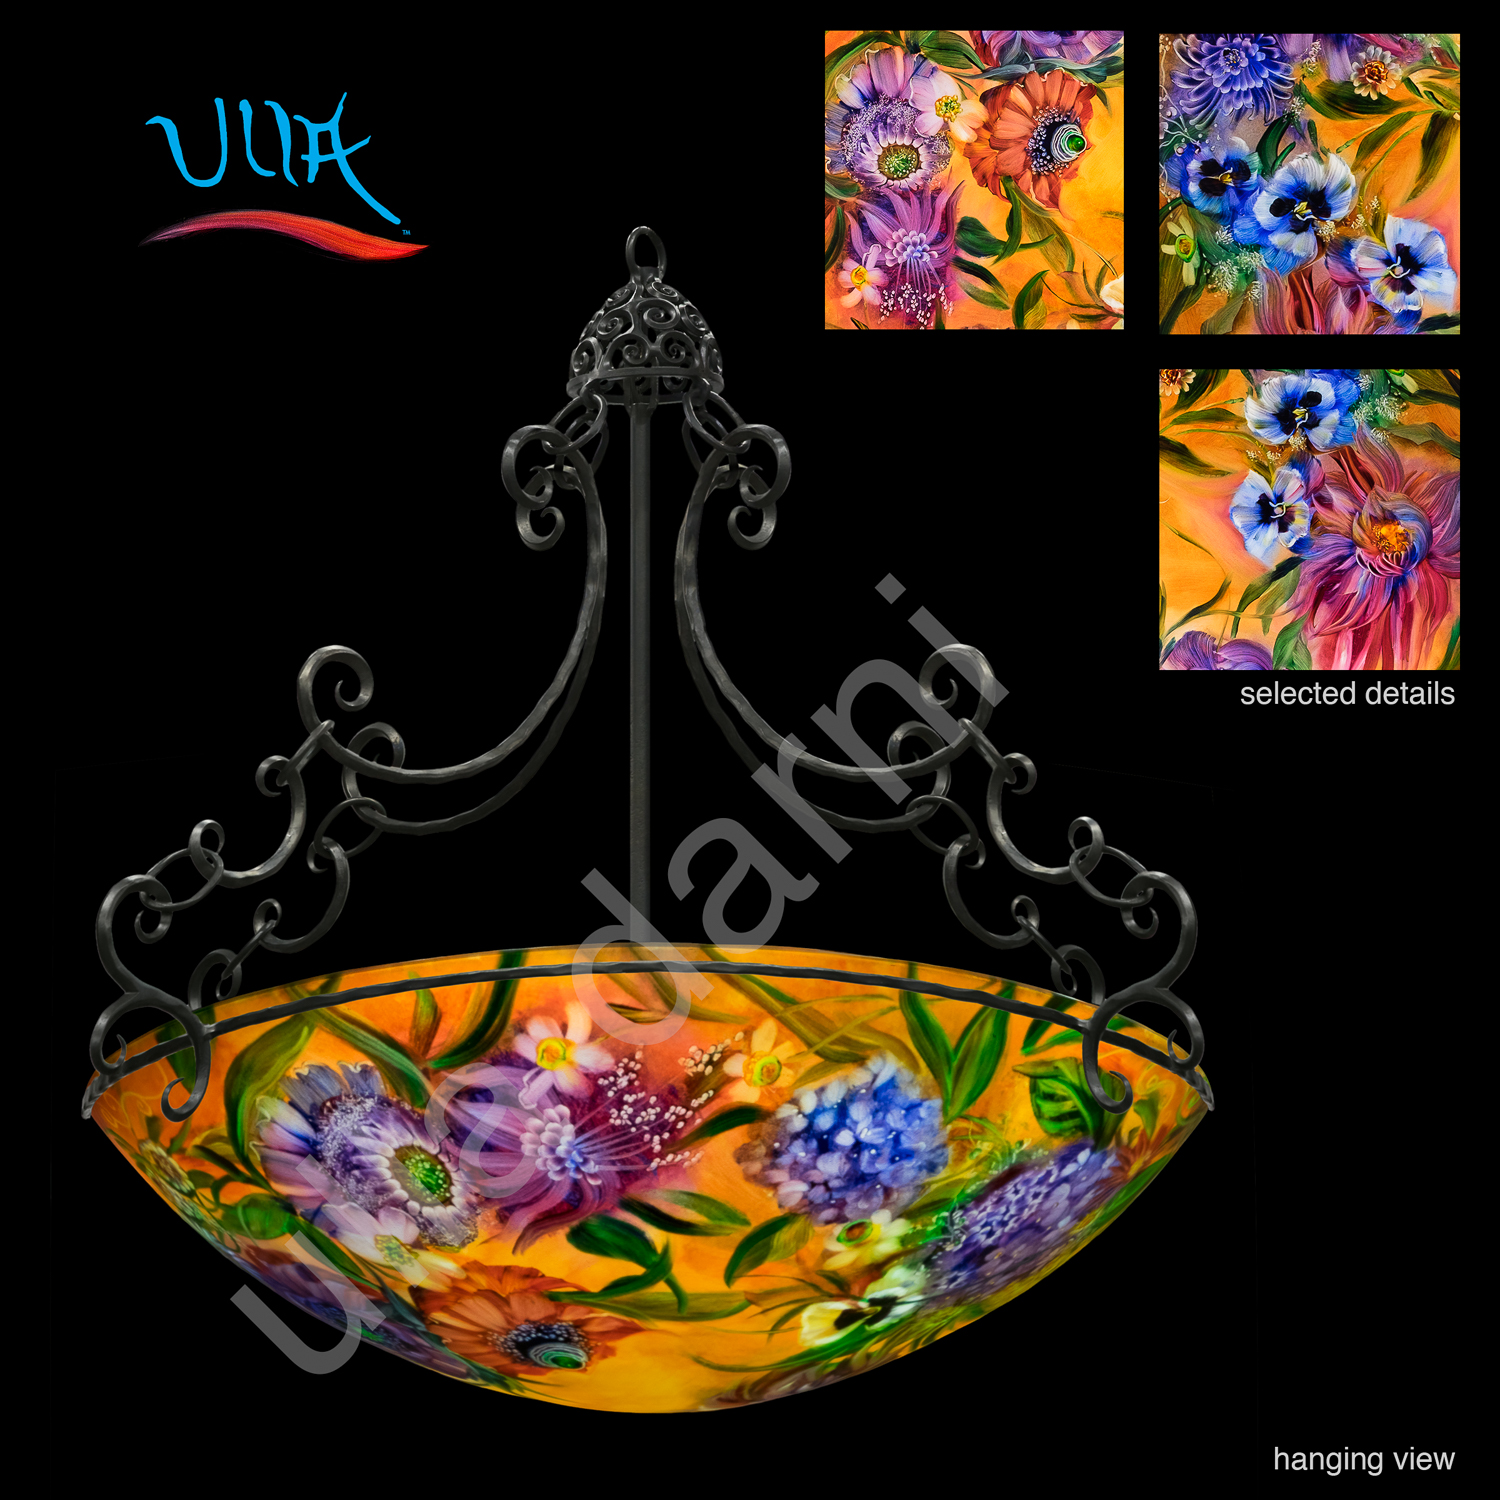 Decorative lighting reverse glass painted chandeliers ulla darni number one o six aloadofball Choice Image